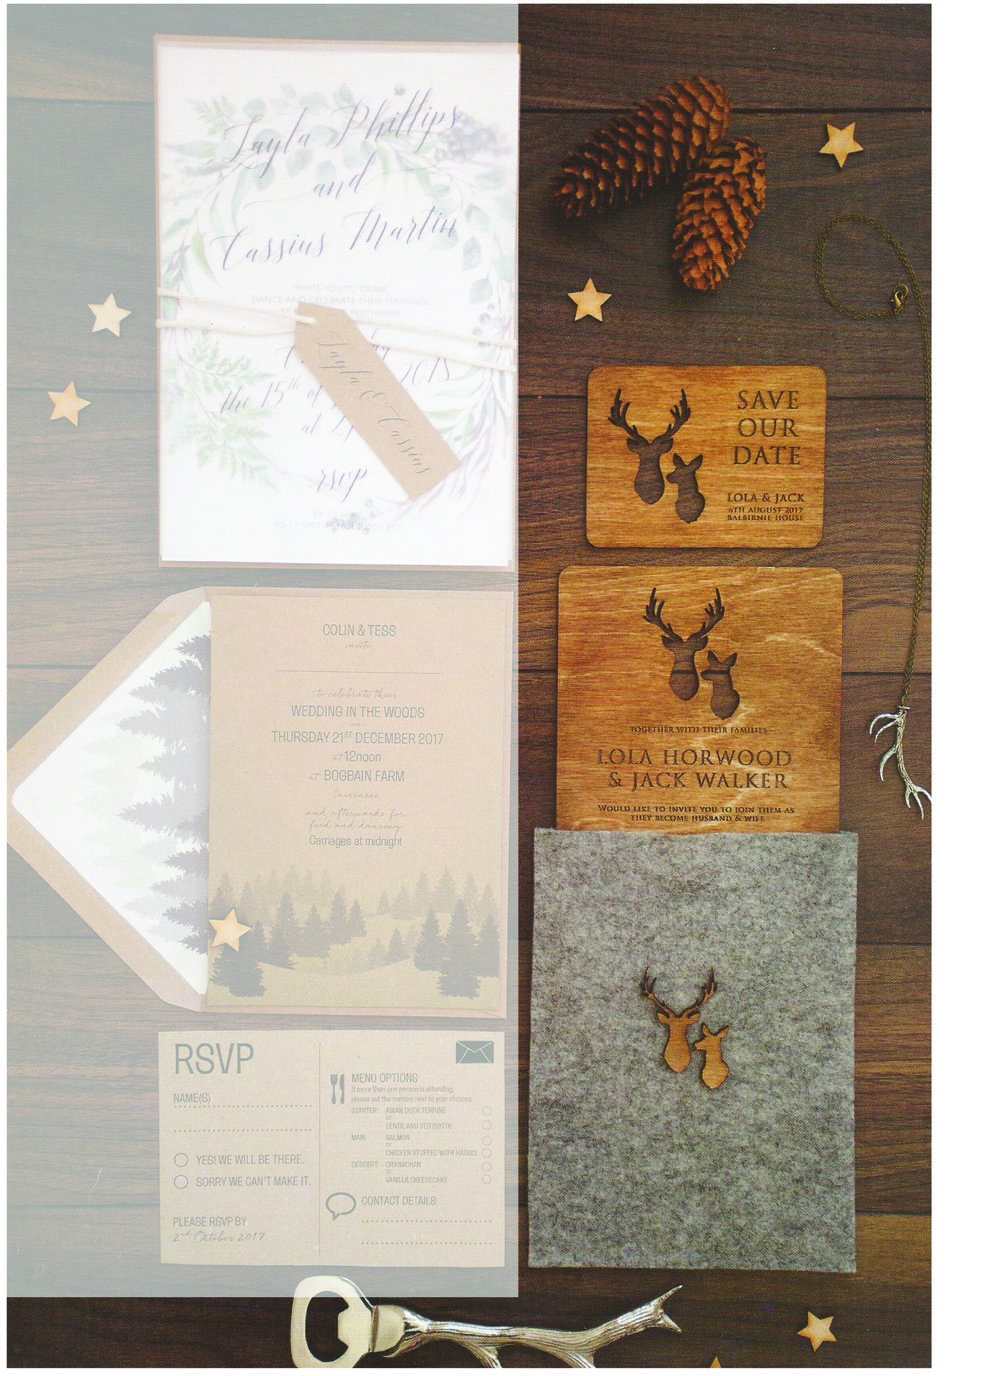 Scottish Wedding Directory - Our stag themed wooden invitations were featured in Scottish Wedding Directory magazine. This design has been popular for those who are having a rustic, Scottish themed wedding.Can be found in issue autumn 17 issue page 252